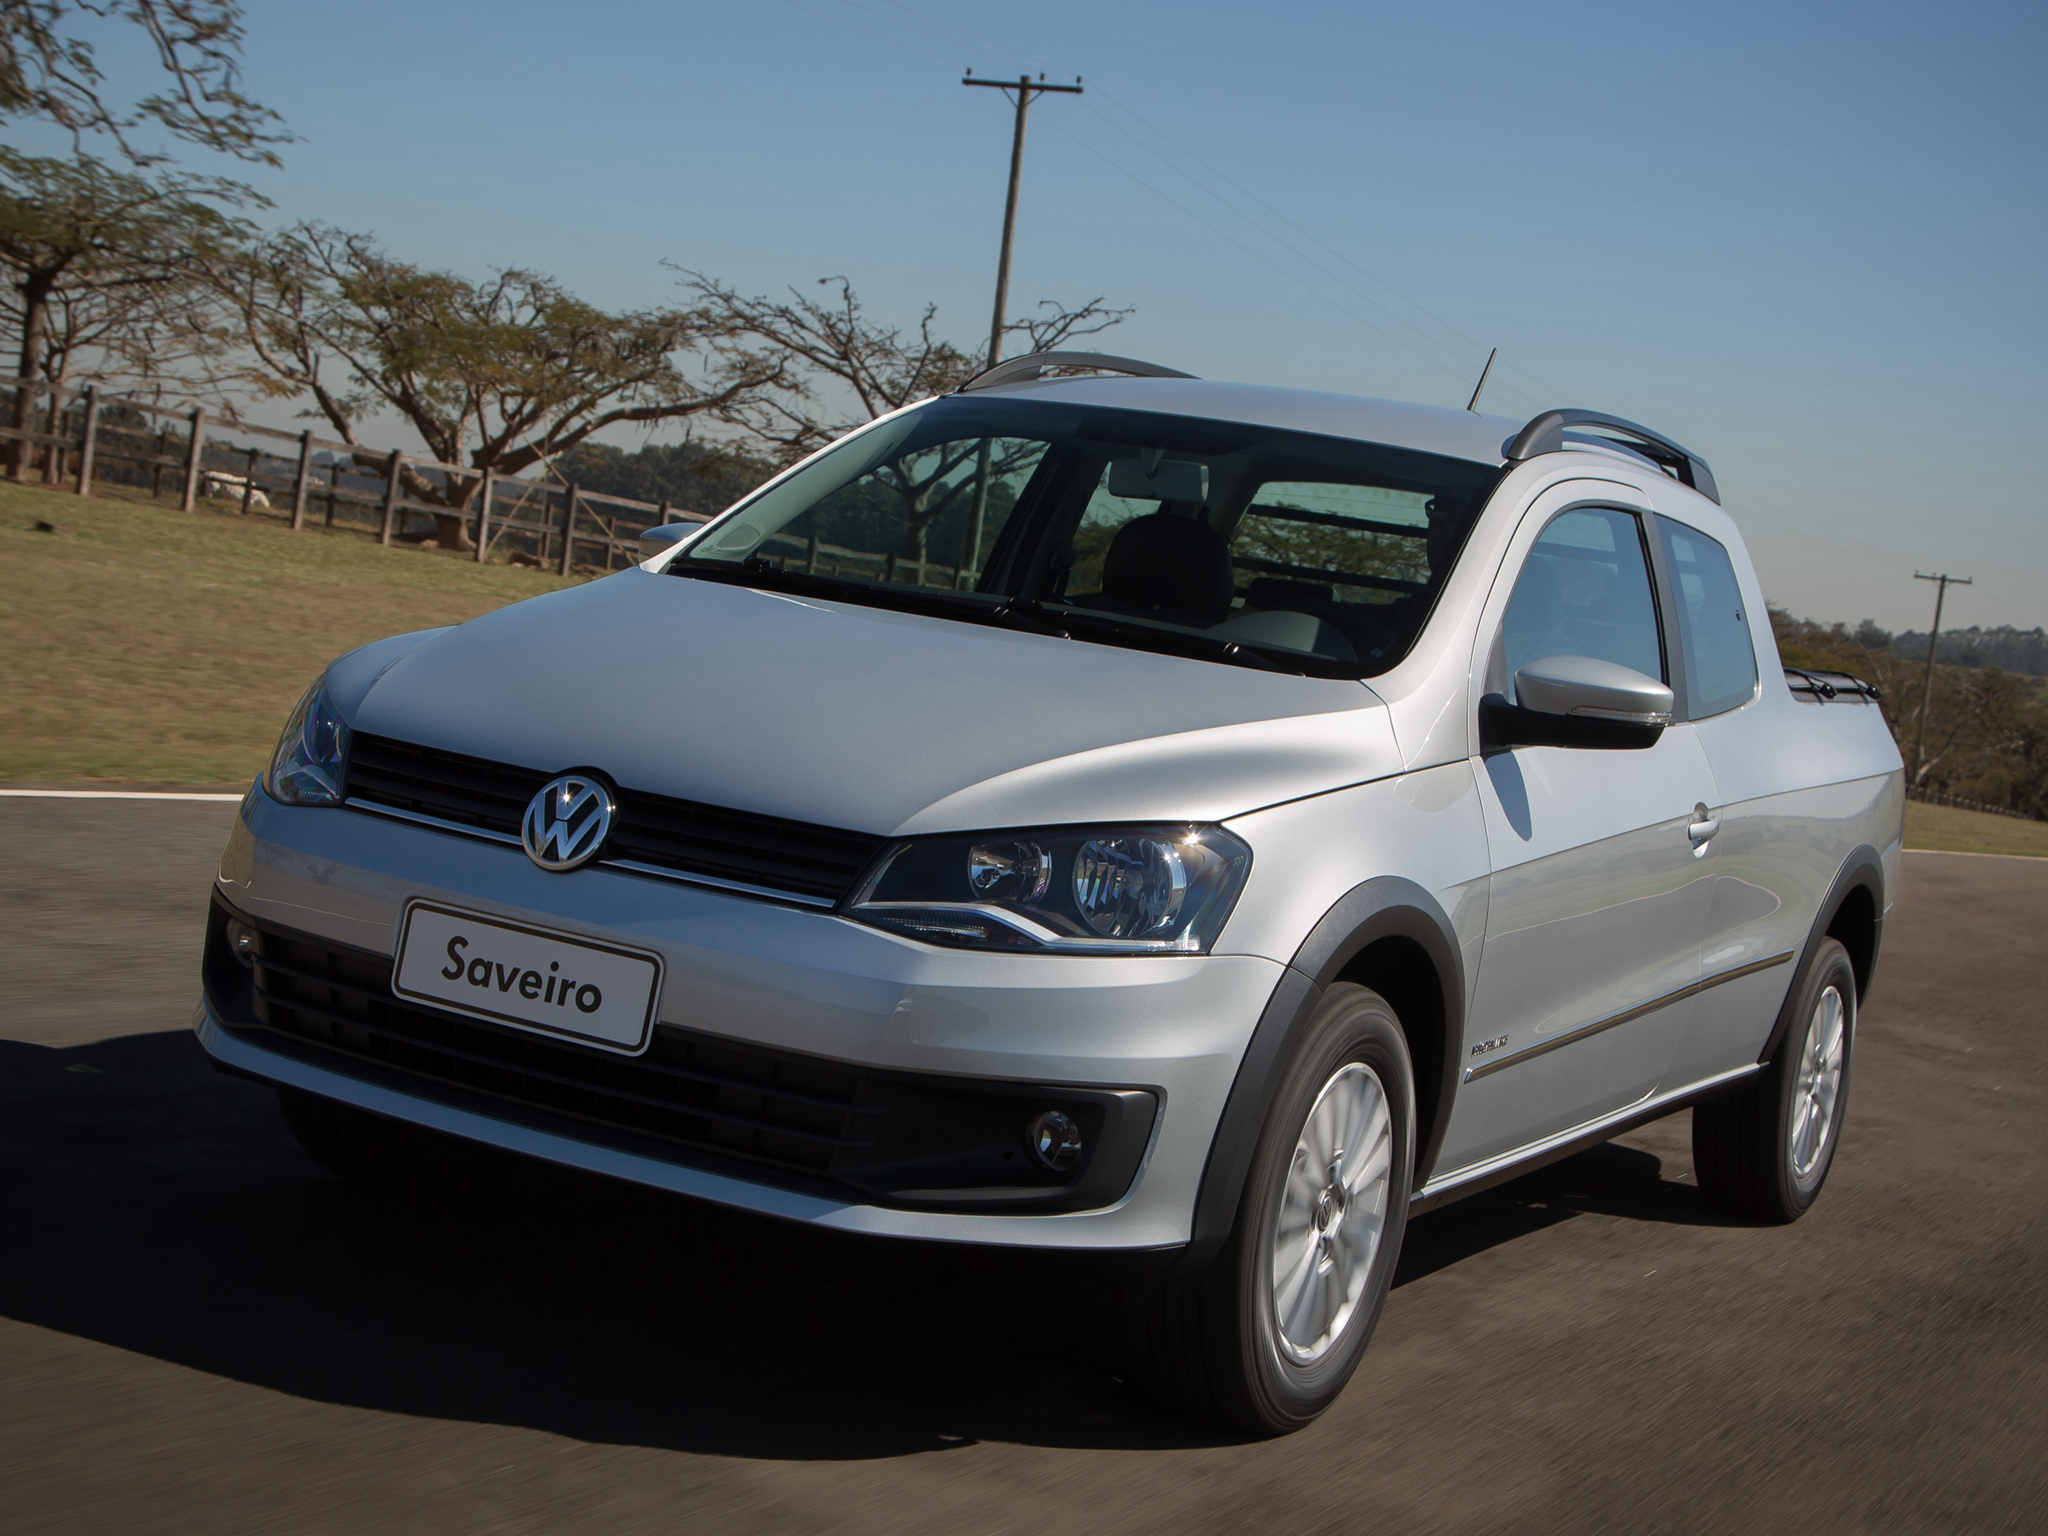 2014 Volkswagen Saveiro Cross Pickup Gets Crew Cab Version in Brazil - autoevolution